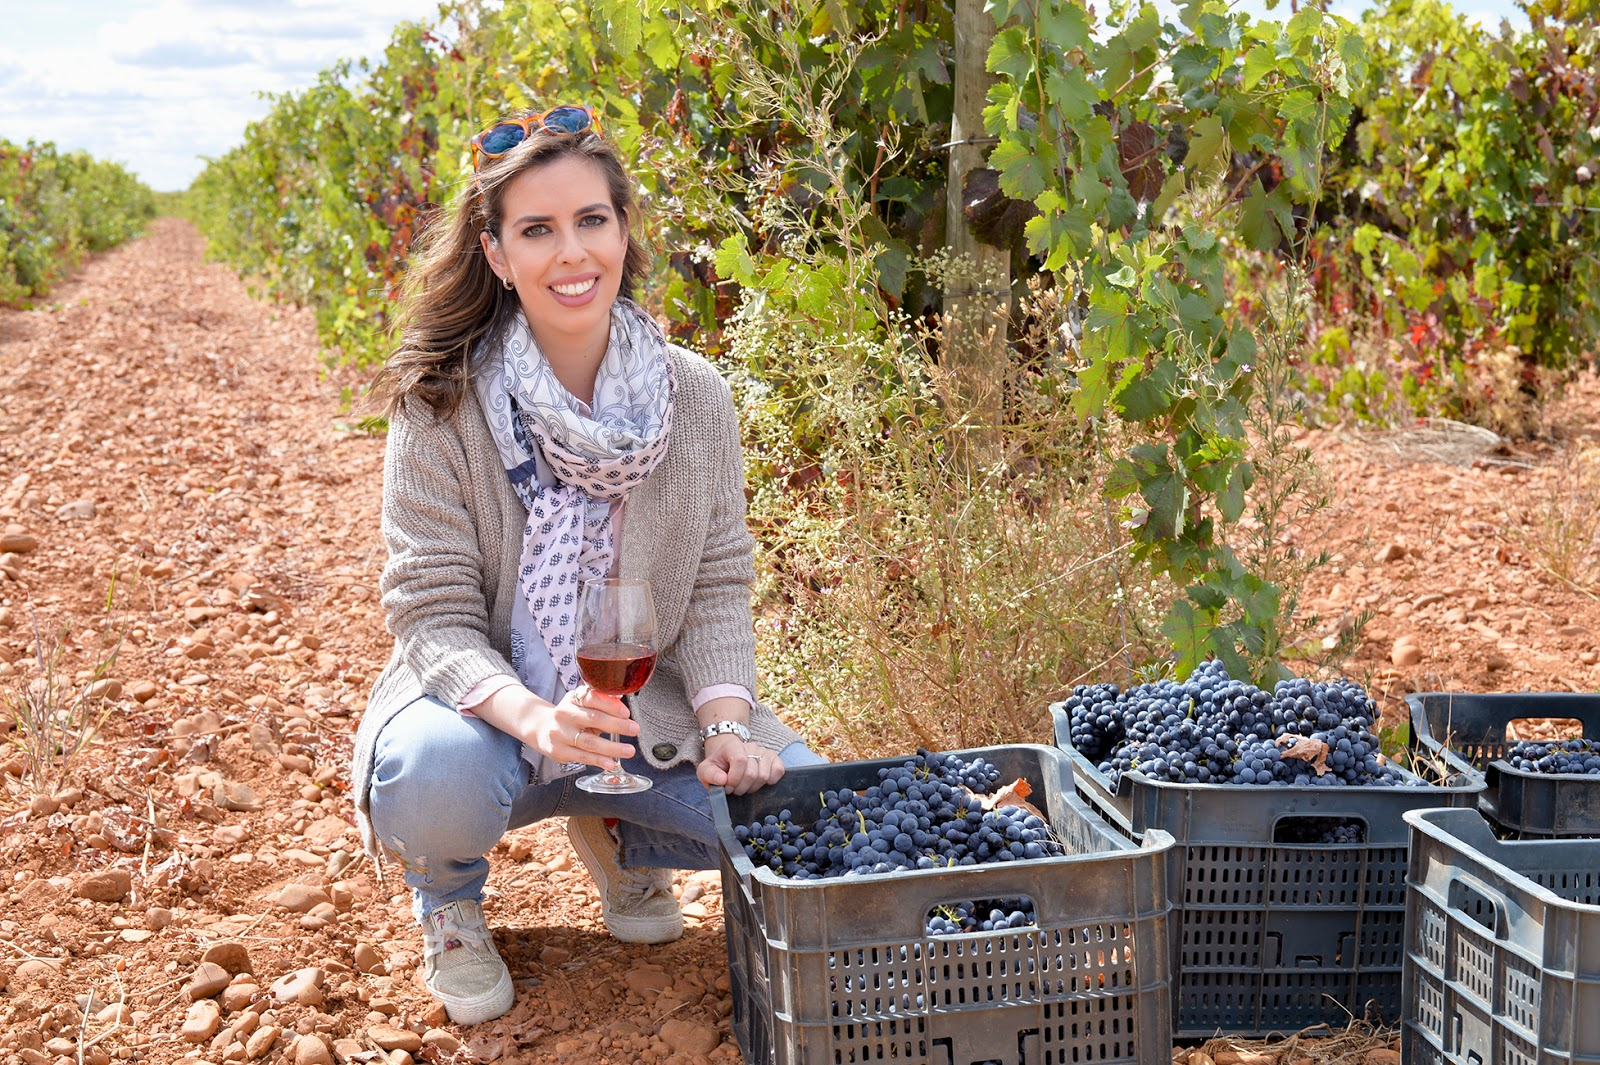 leyenda del paramo vendimia wine harvest vineyard fashion blogger